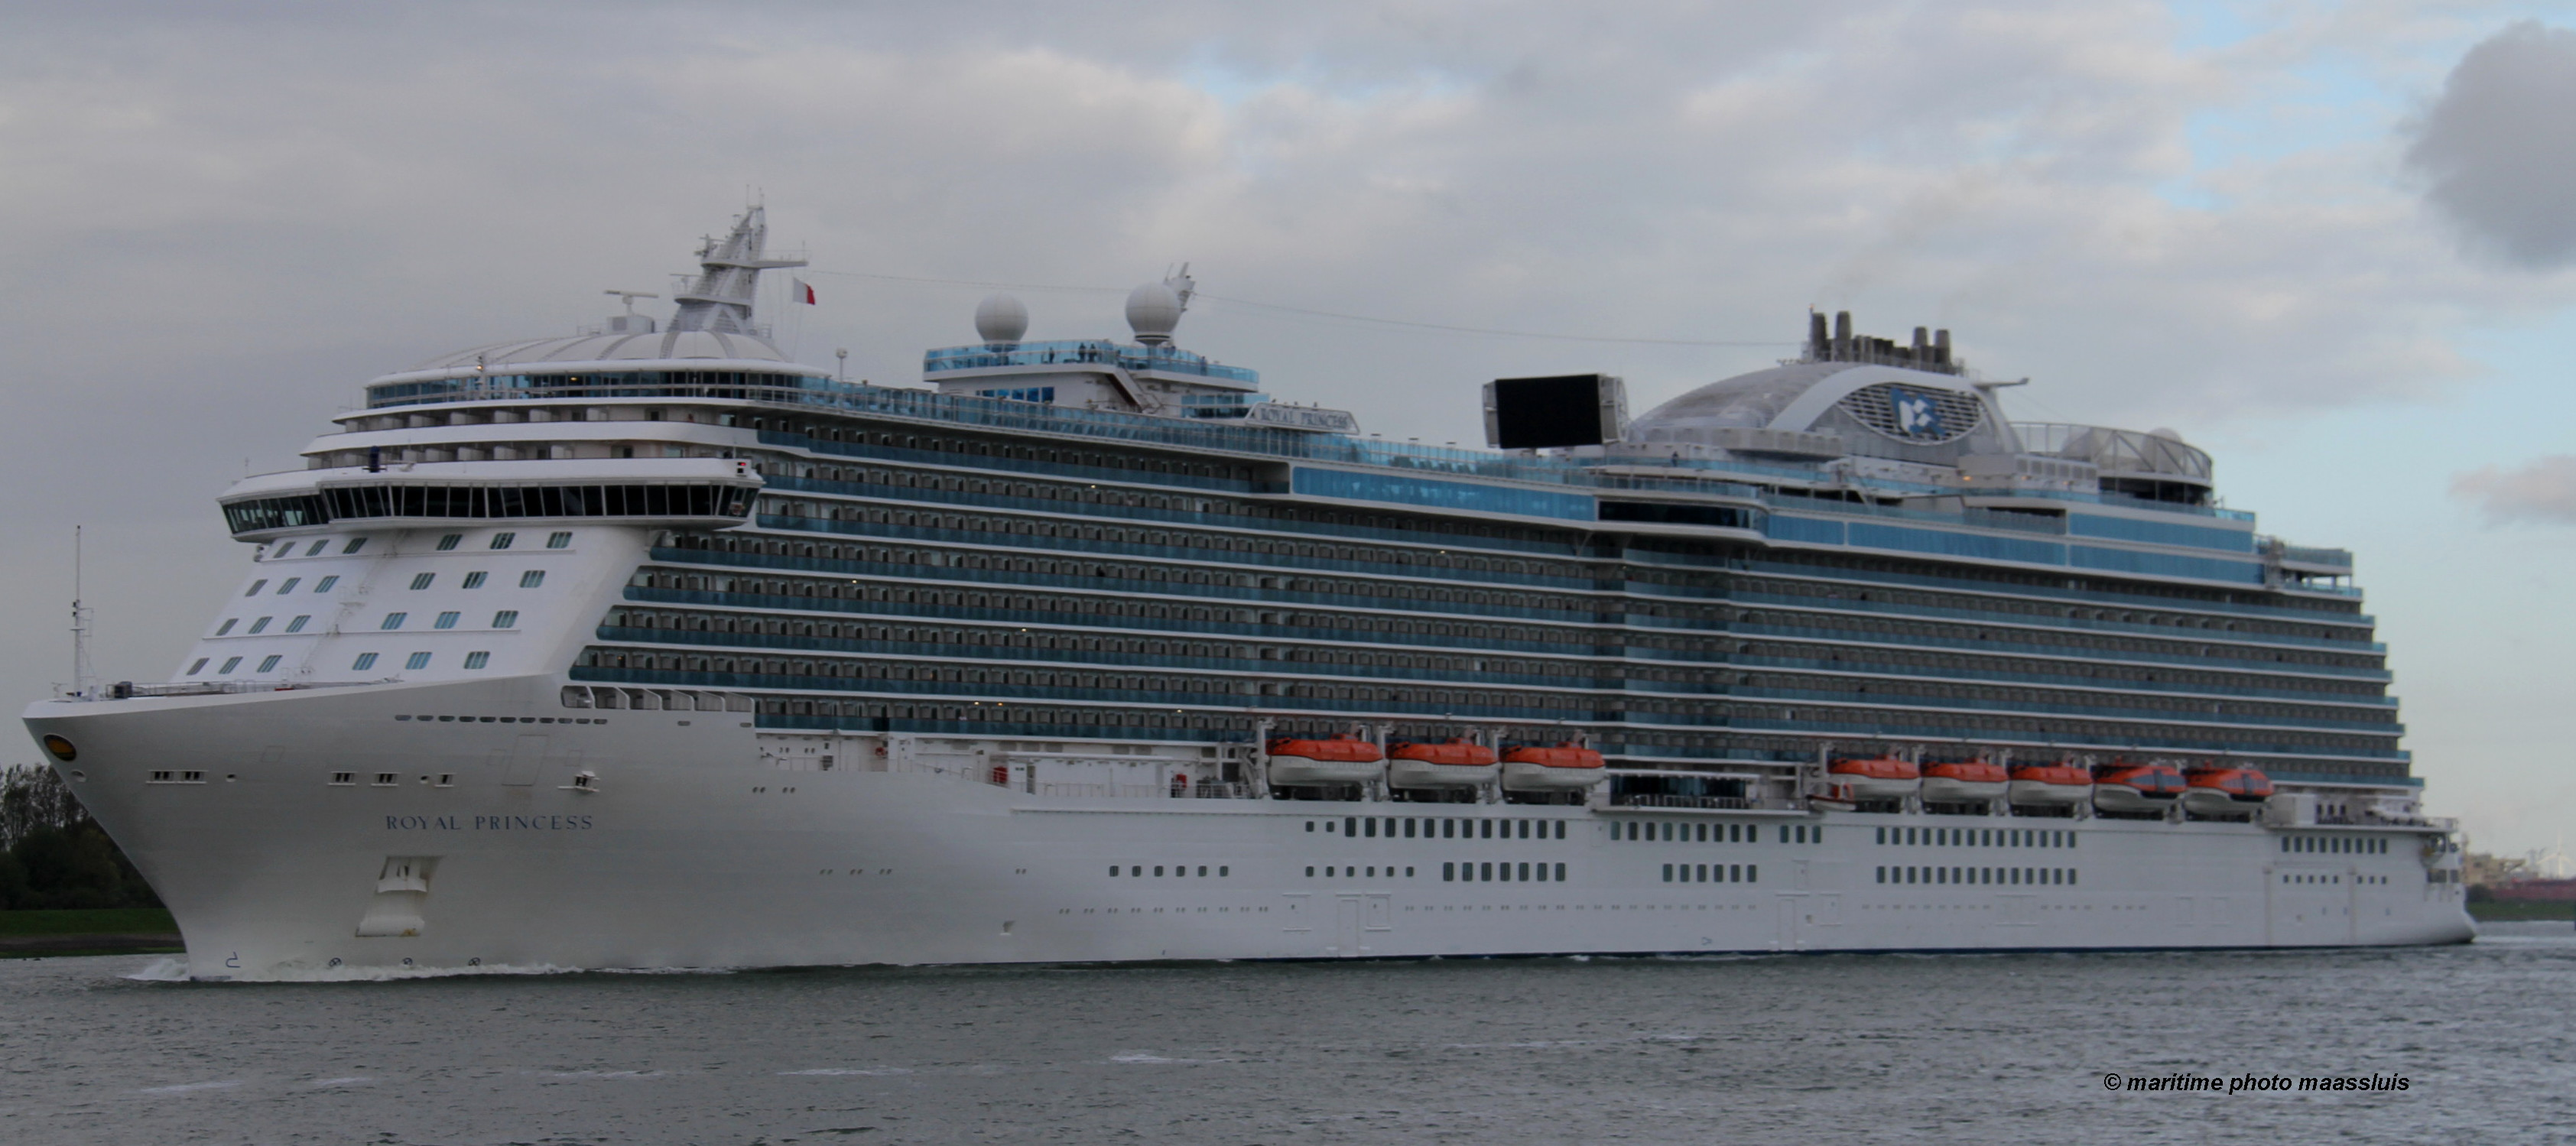 royalprincess01.jpg